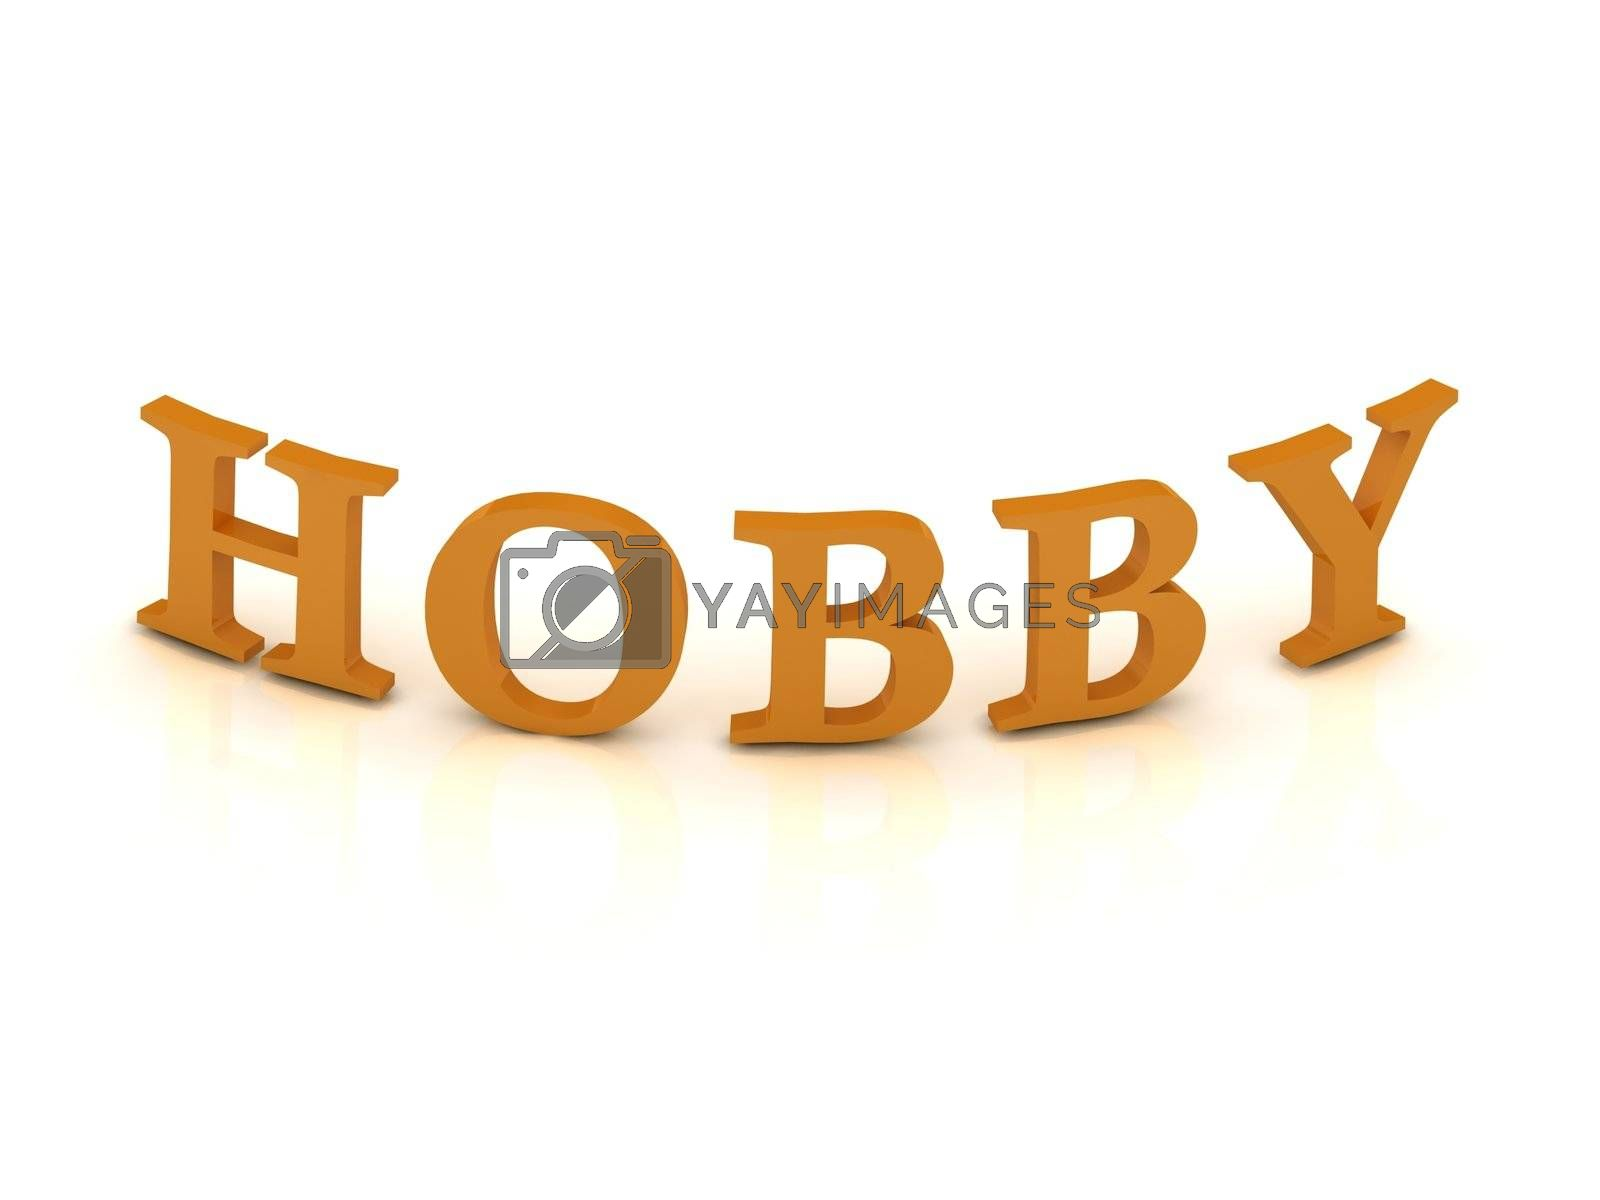 HOBBY sign with orange letters on isolated white background